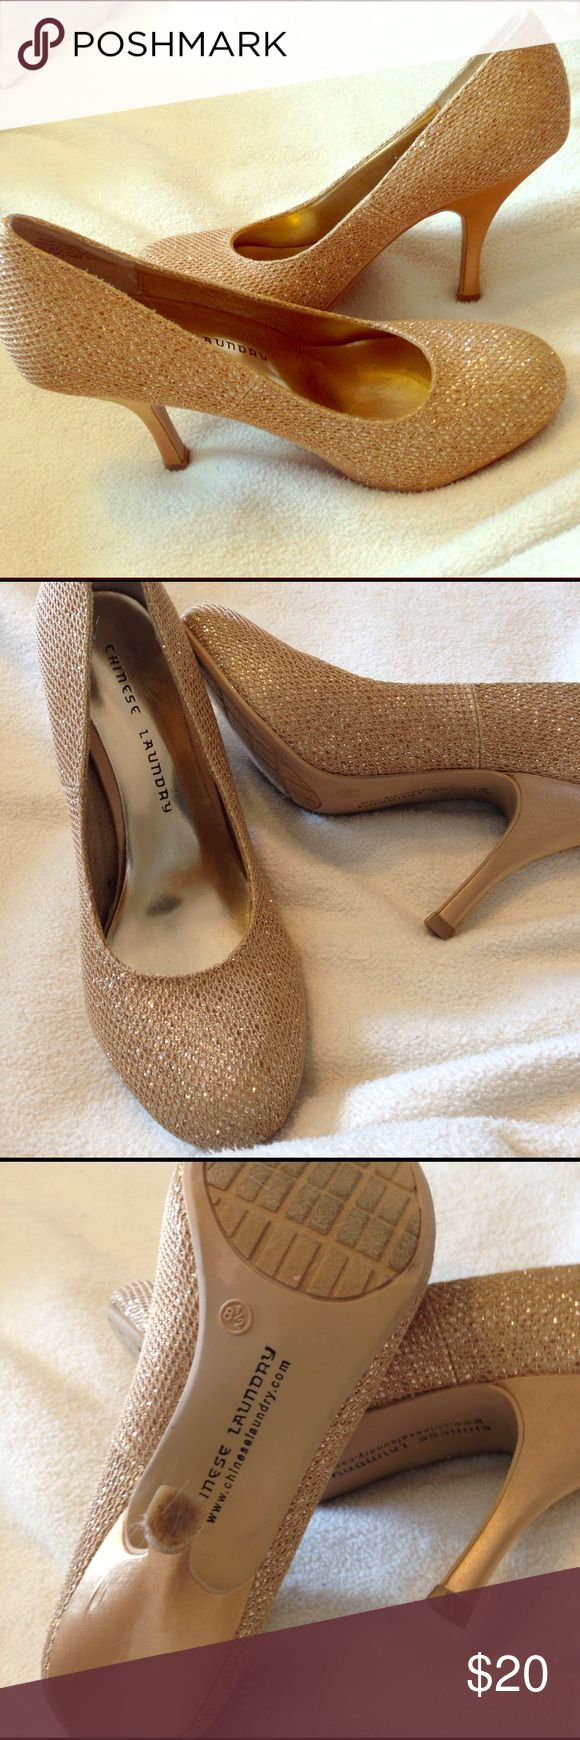 Sparkly gold heels Shimmery gold heels. Great for dressing up jeans or worn with the little black dress. Enjoy! Chinese Laundry Shoes Heels